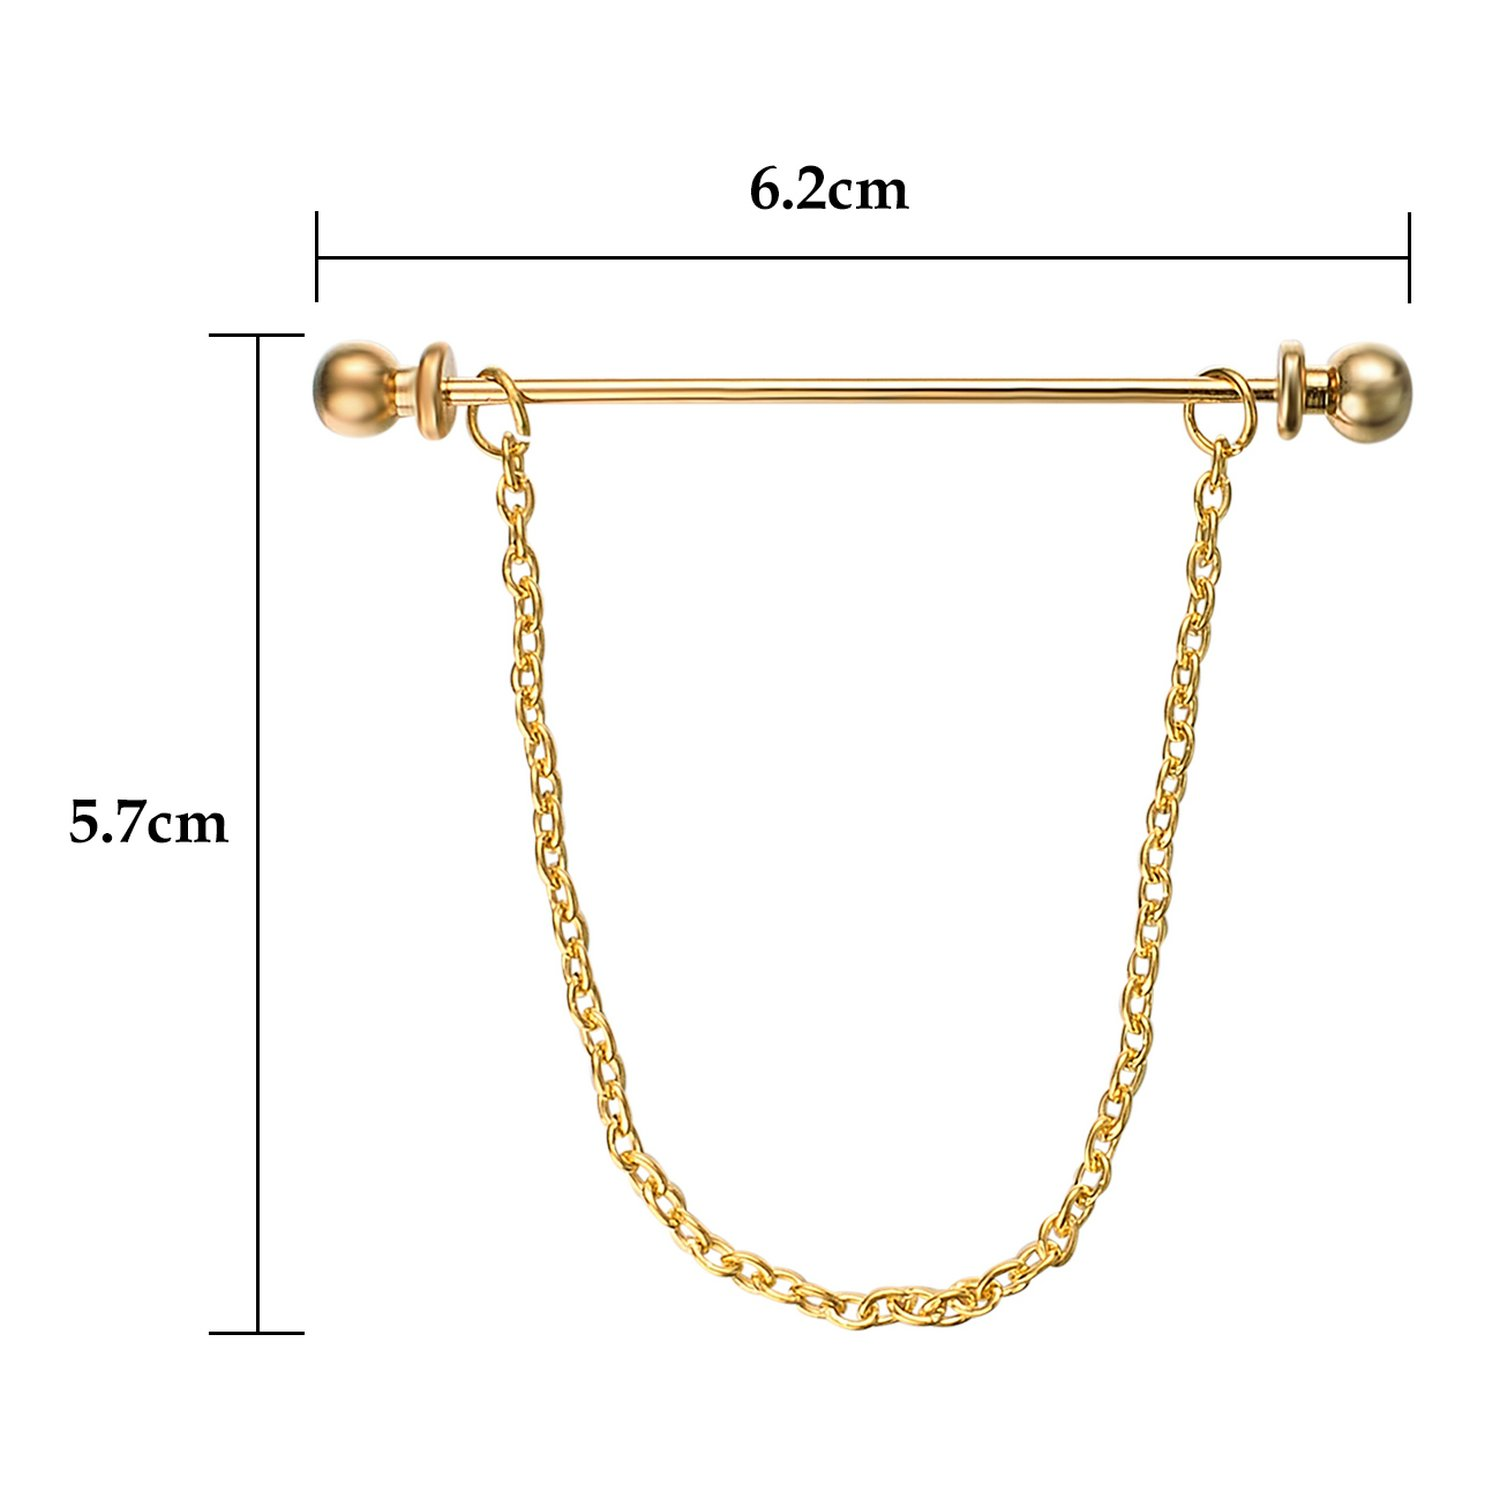 Yoursfs Chain Tie Pin 18K Gold Plated Tie Clip for Men Single Loop Tie Pins and Clips (Tie Chain) by Yoursfs (Image #2)